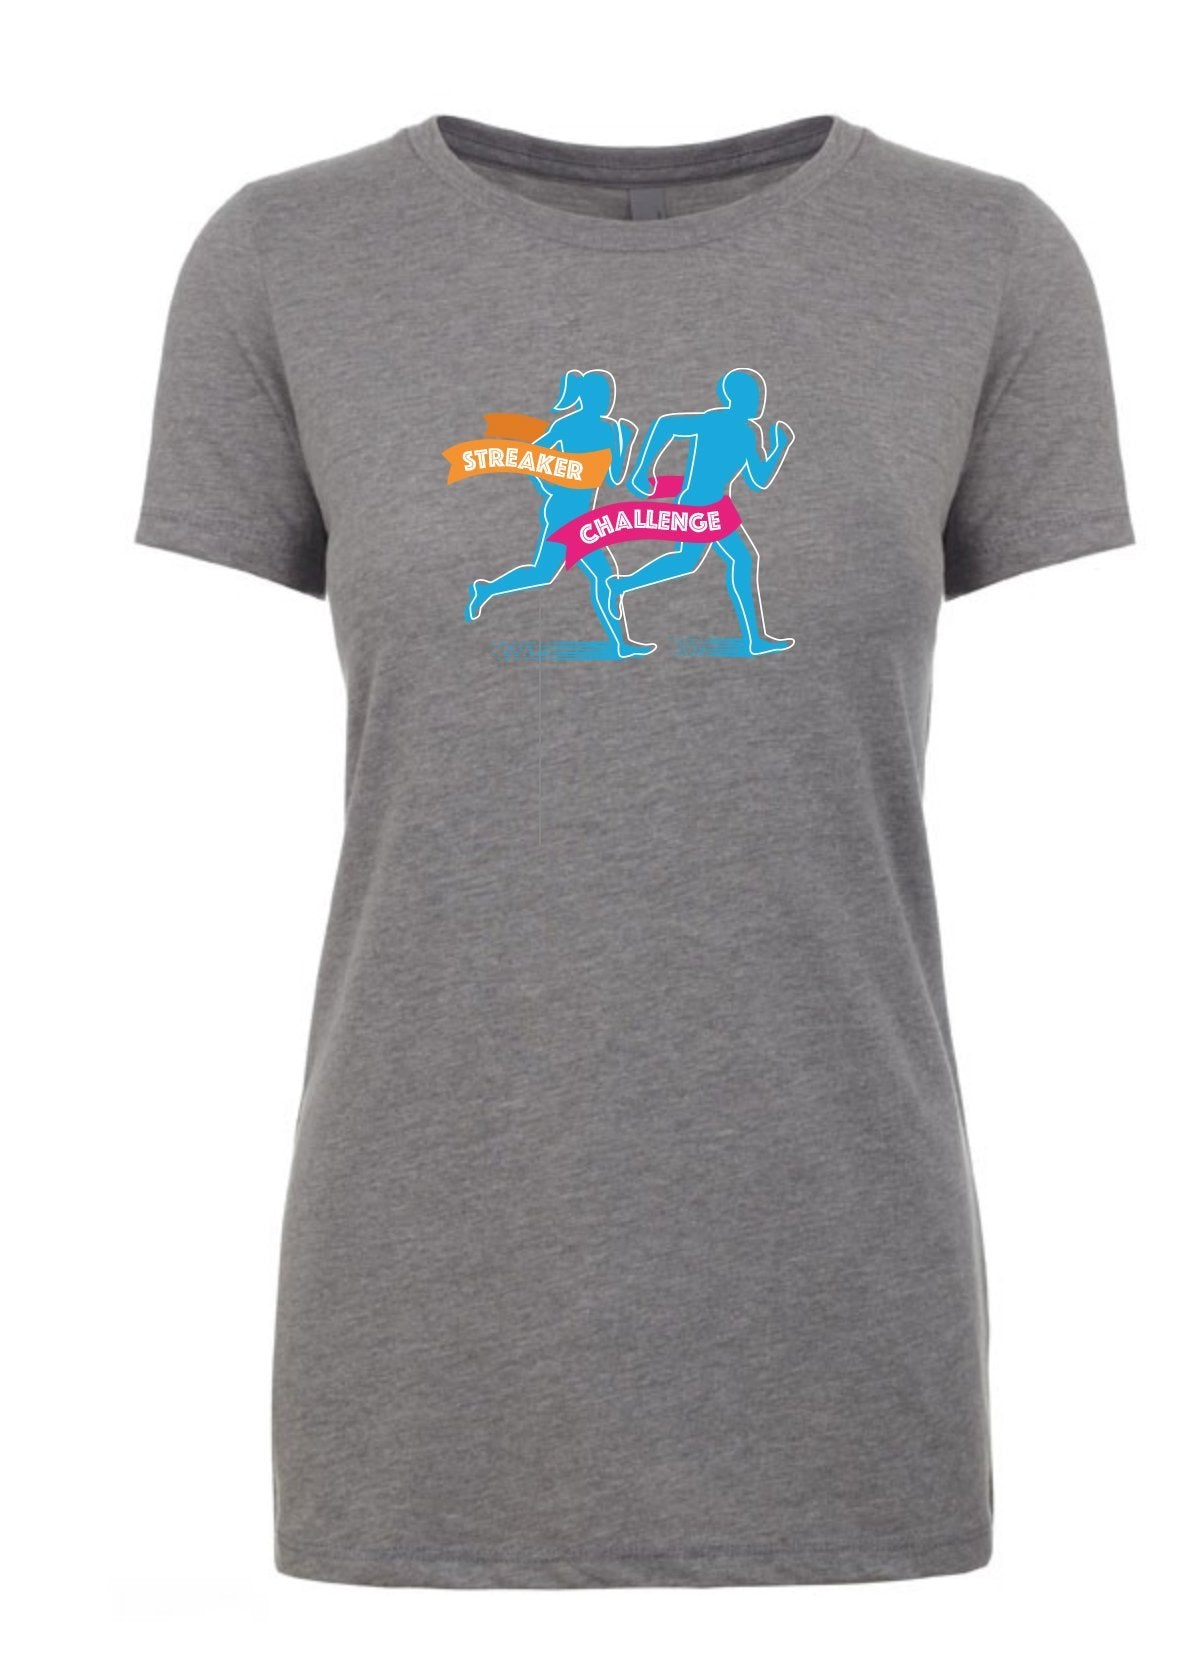 Spring Streaker Challenge Poly-Blend Shirt Shirts Run The Edge